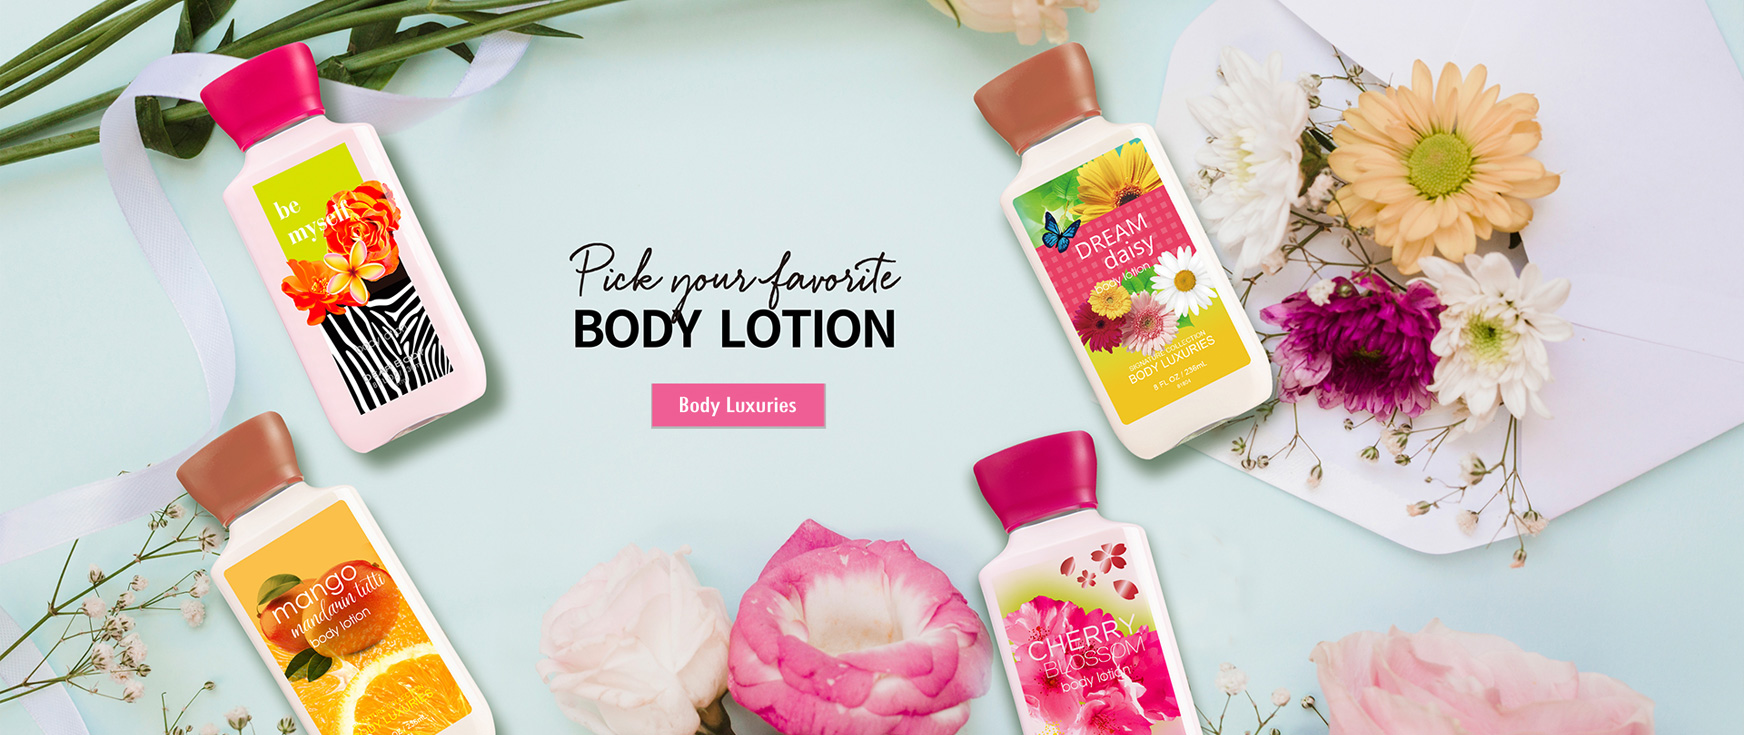 Dear Body-Dear Body Cosmetic -Is the production of bathing series, washing hair care series and other products